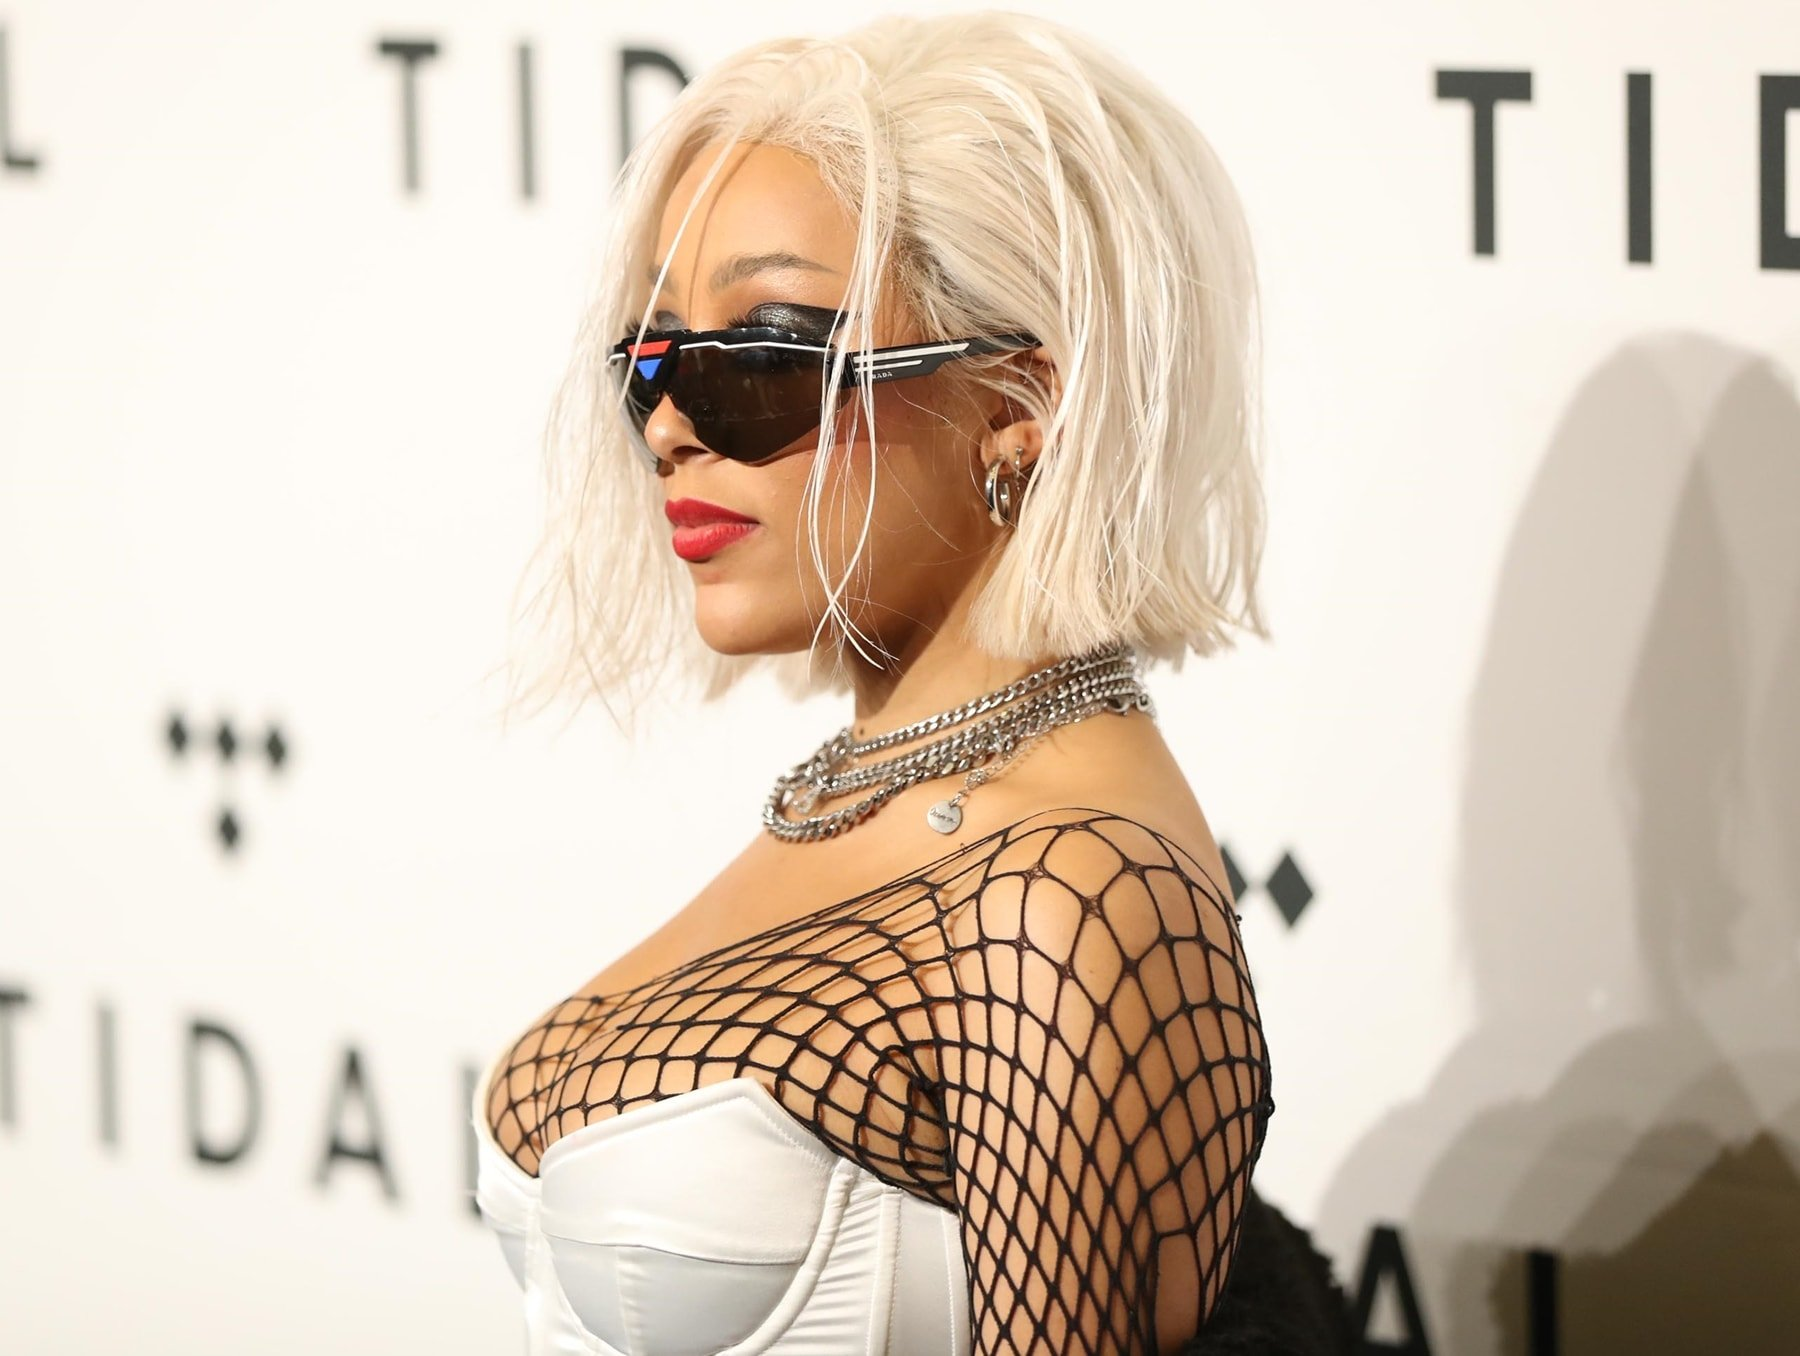 Doja Cat promised to show her boobs if her Nicki Minaj collaboration 'Say So' hit number one